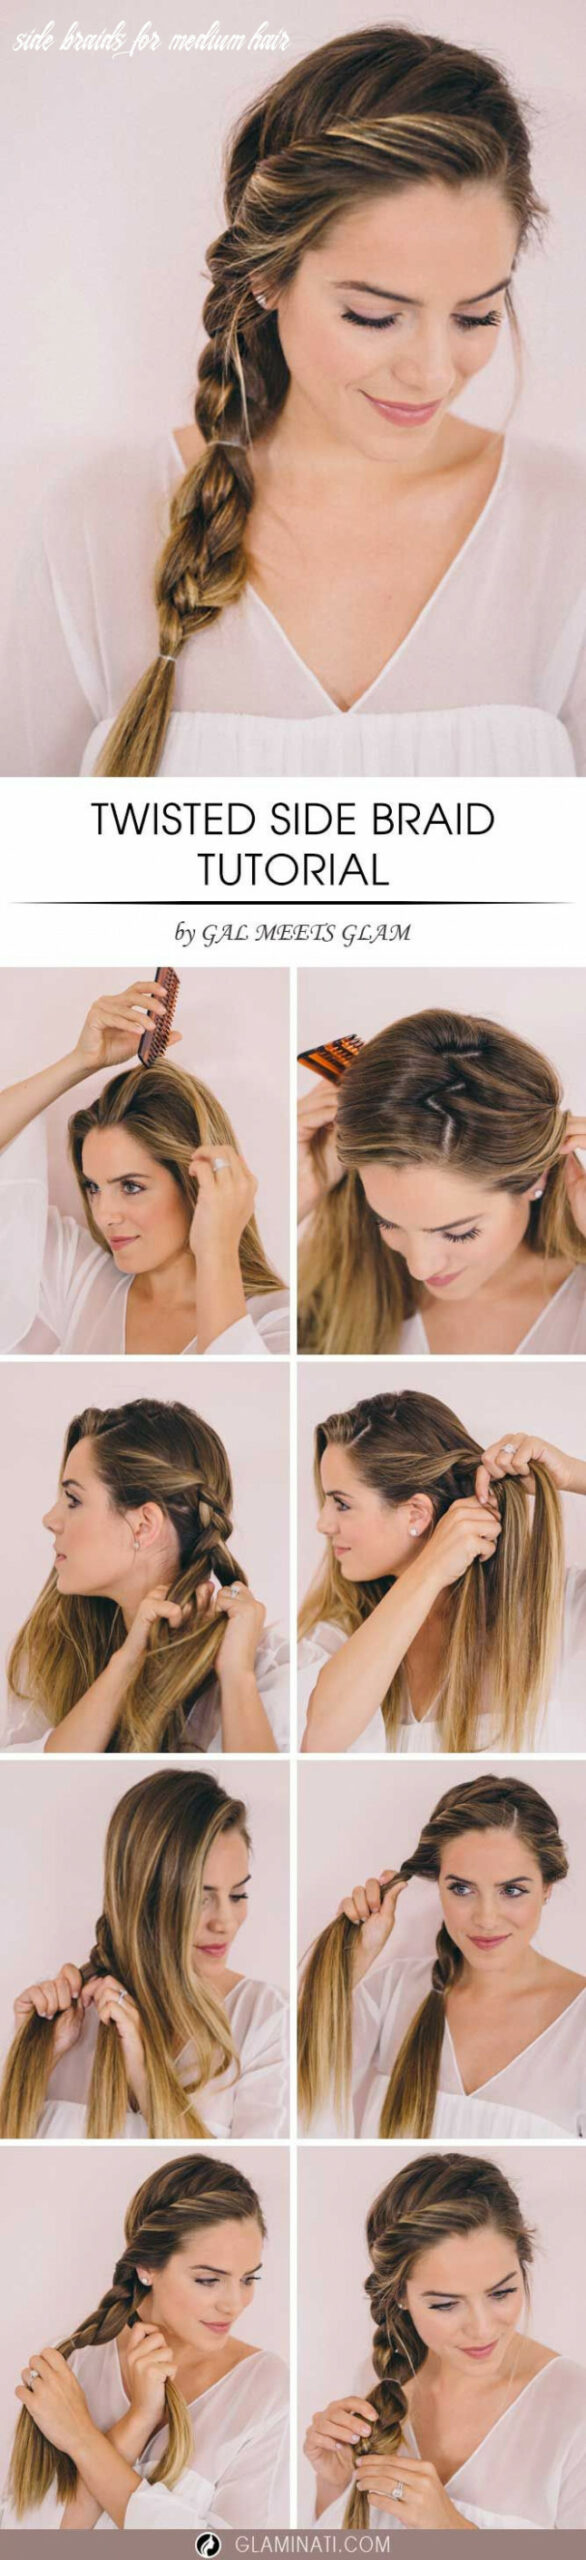 Twisted side braid for various occasions   long hair styles